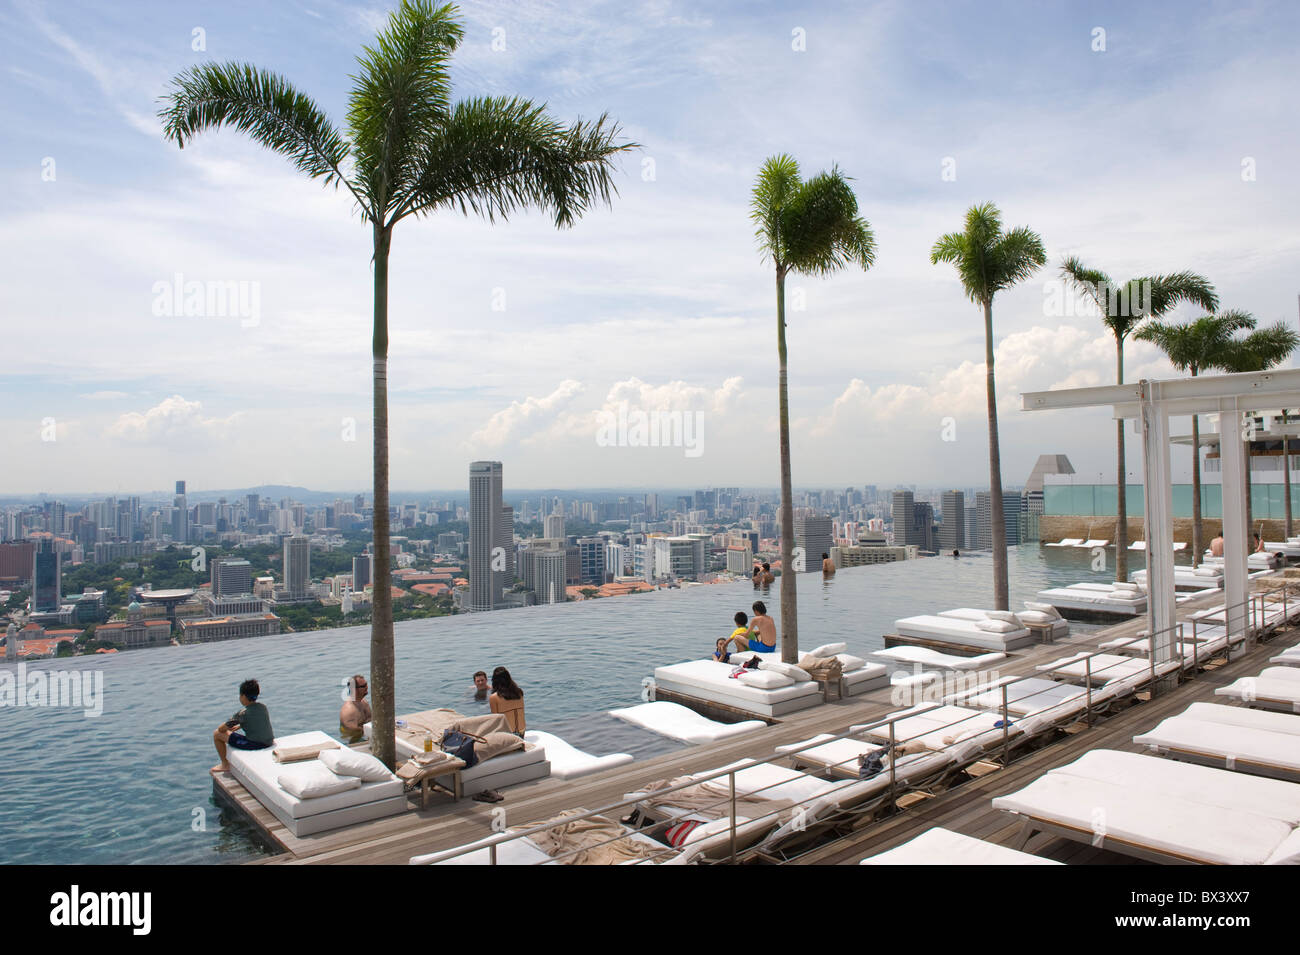 People enjoying the Infinity Pool at the Marina Bay Sands Hotel in Singapore - Stock Image